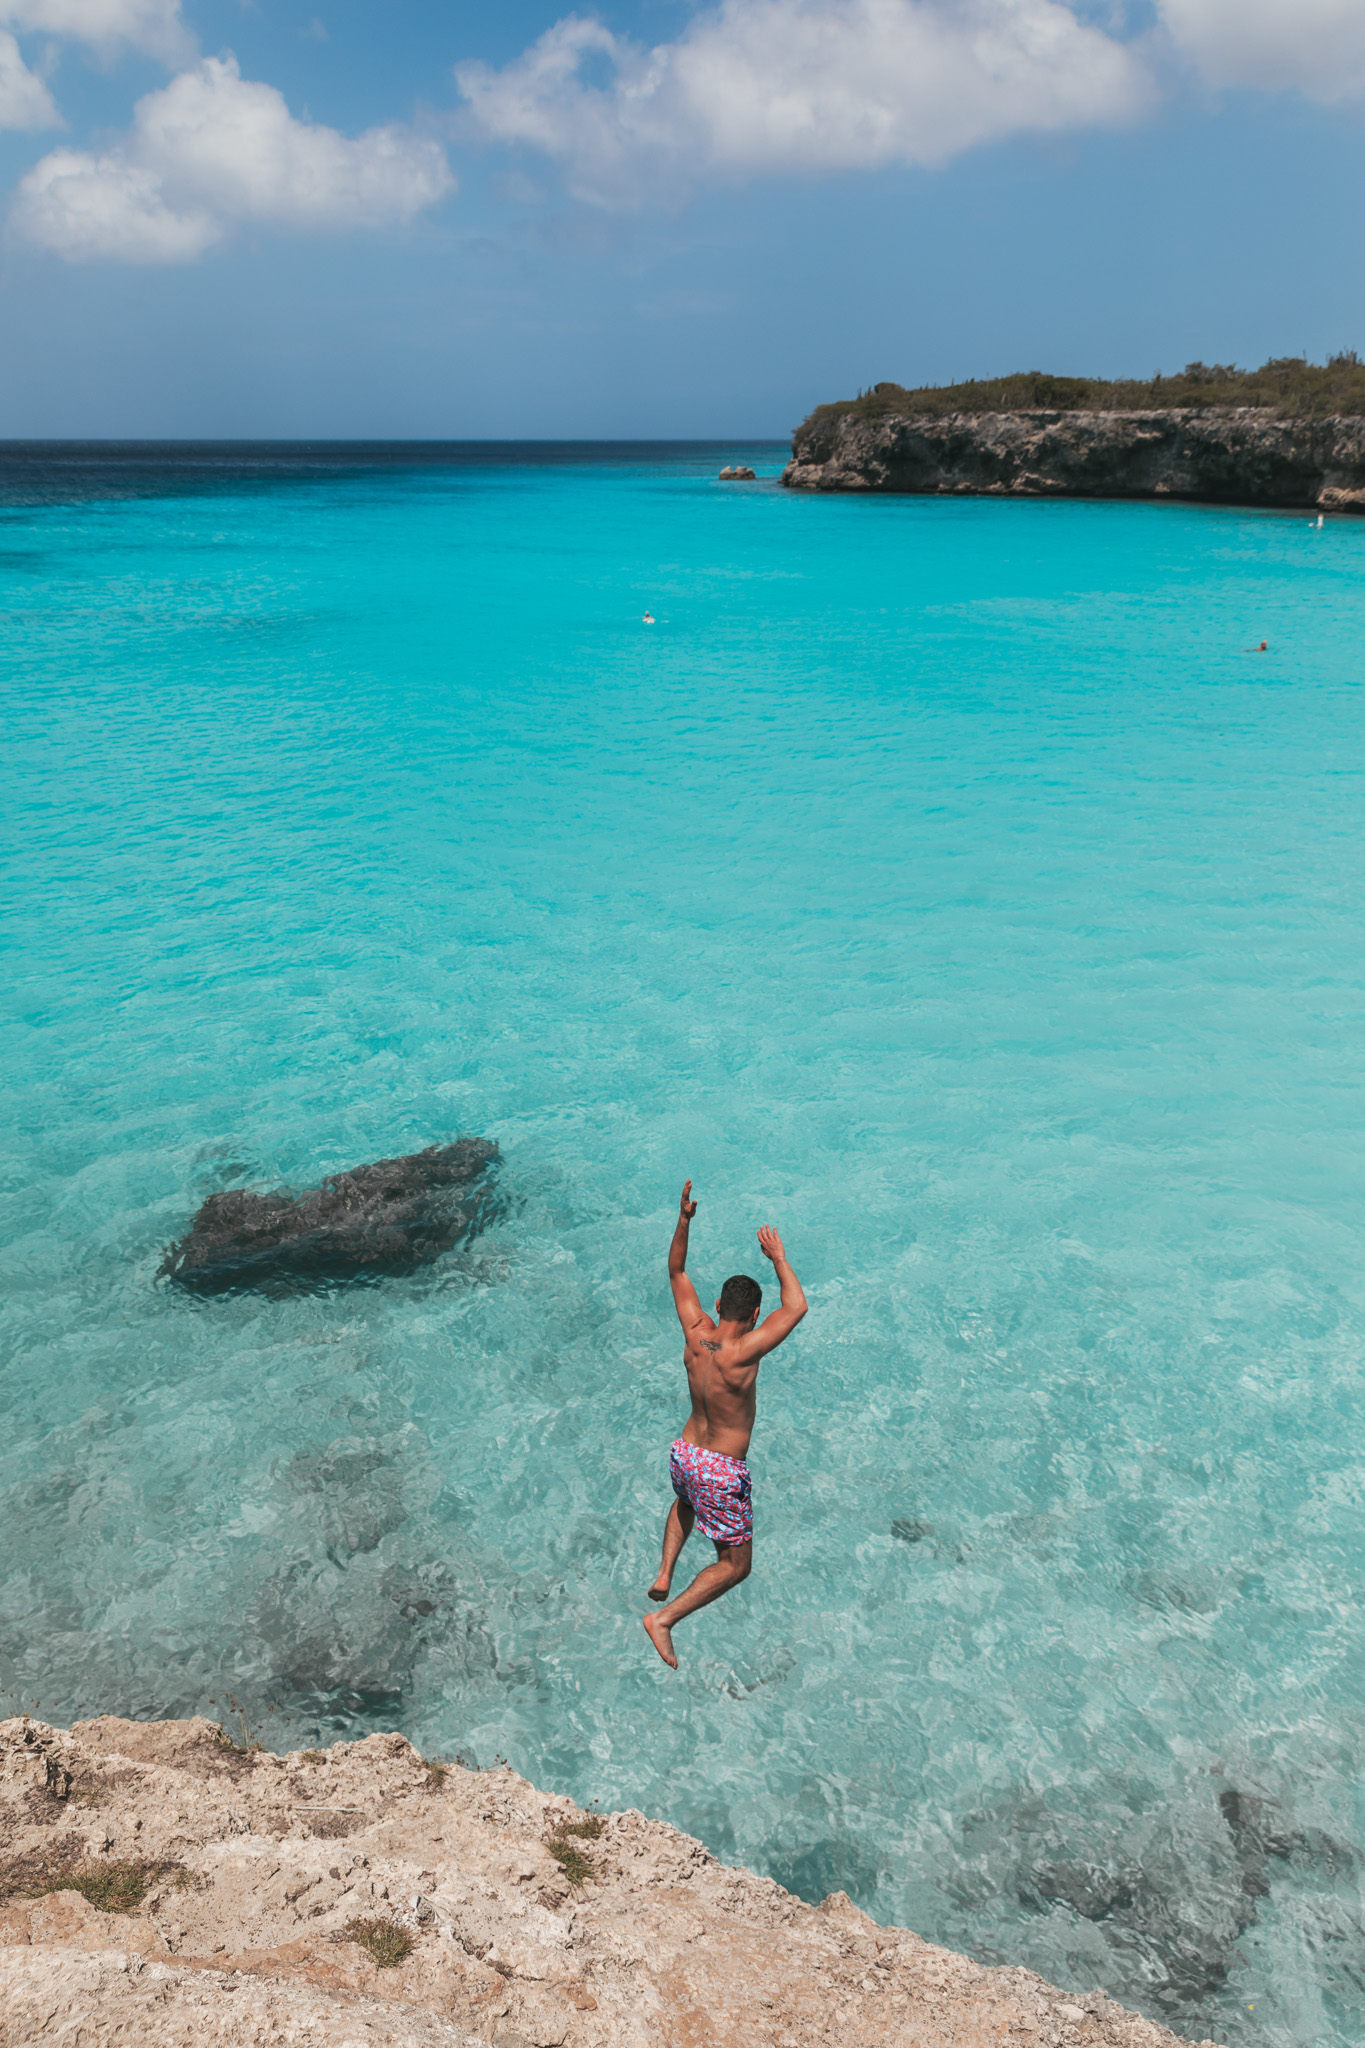 Cliff jumping at Playa Knip on Curaçao // 20 Photos to Show You Why Curaçao Needs to Be On Your Travel Radar // www.readysetjetset.net #readysetjetset #curacao #caribbean #beach #ocean #paradise #travel